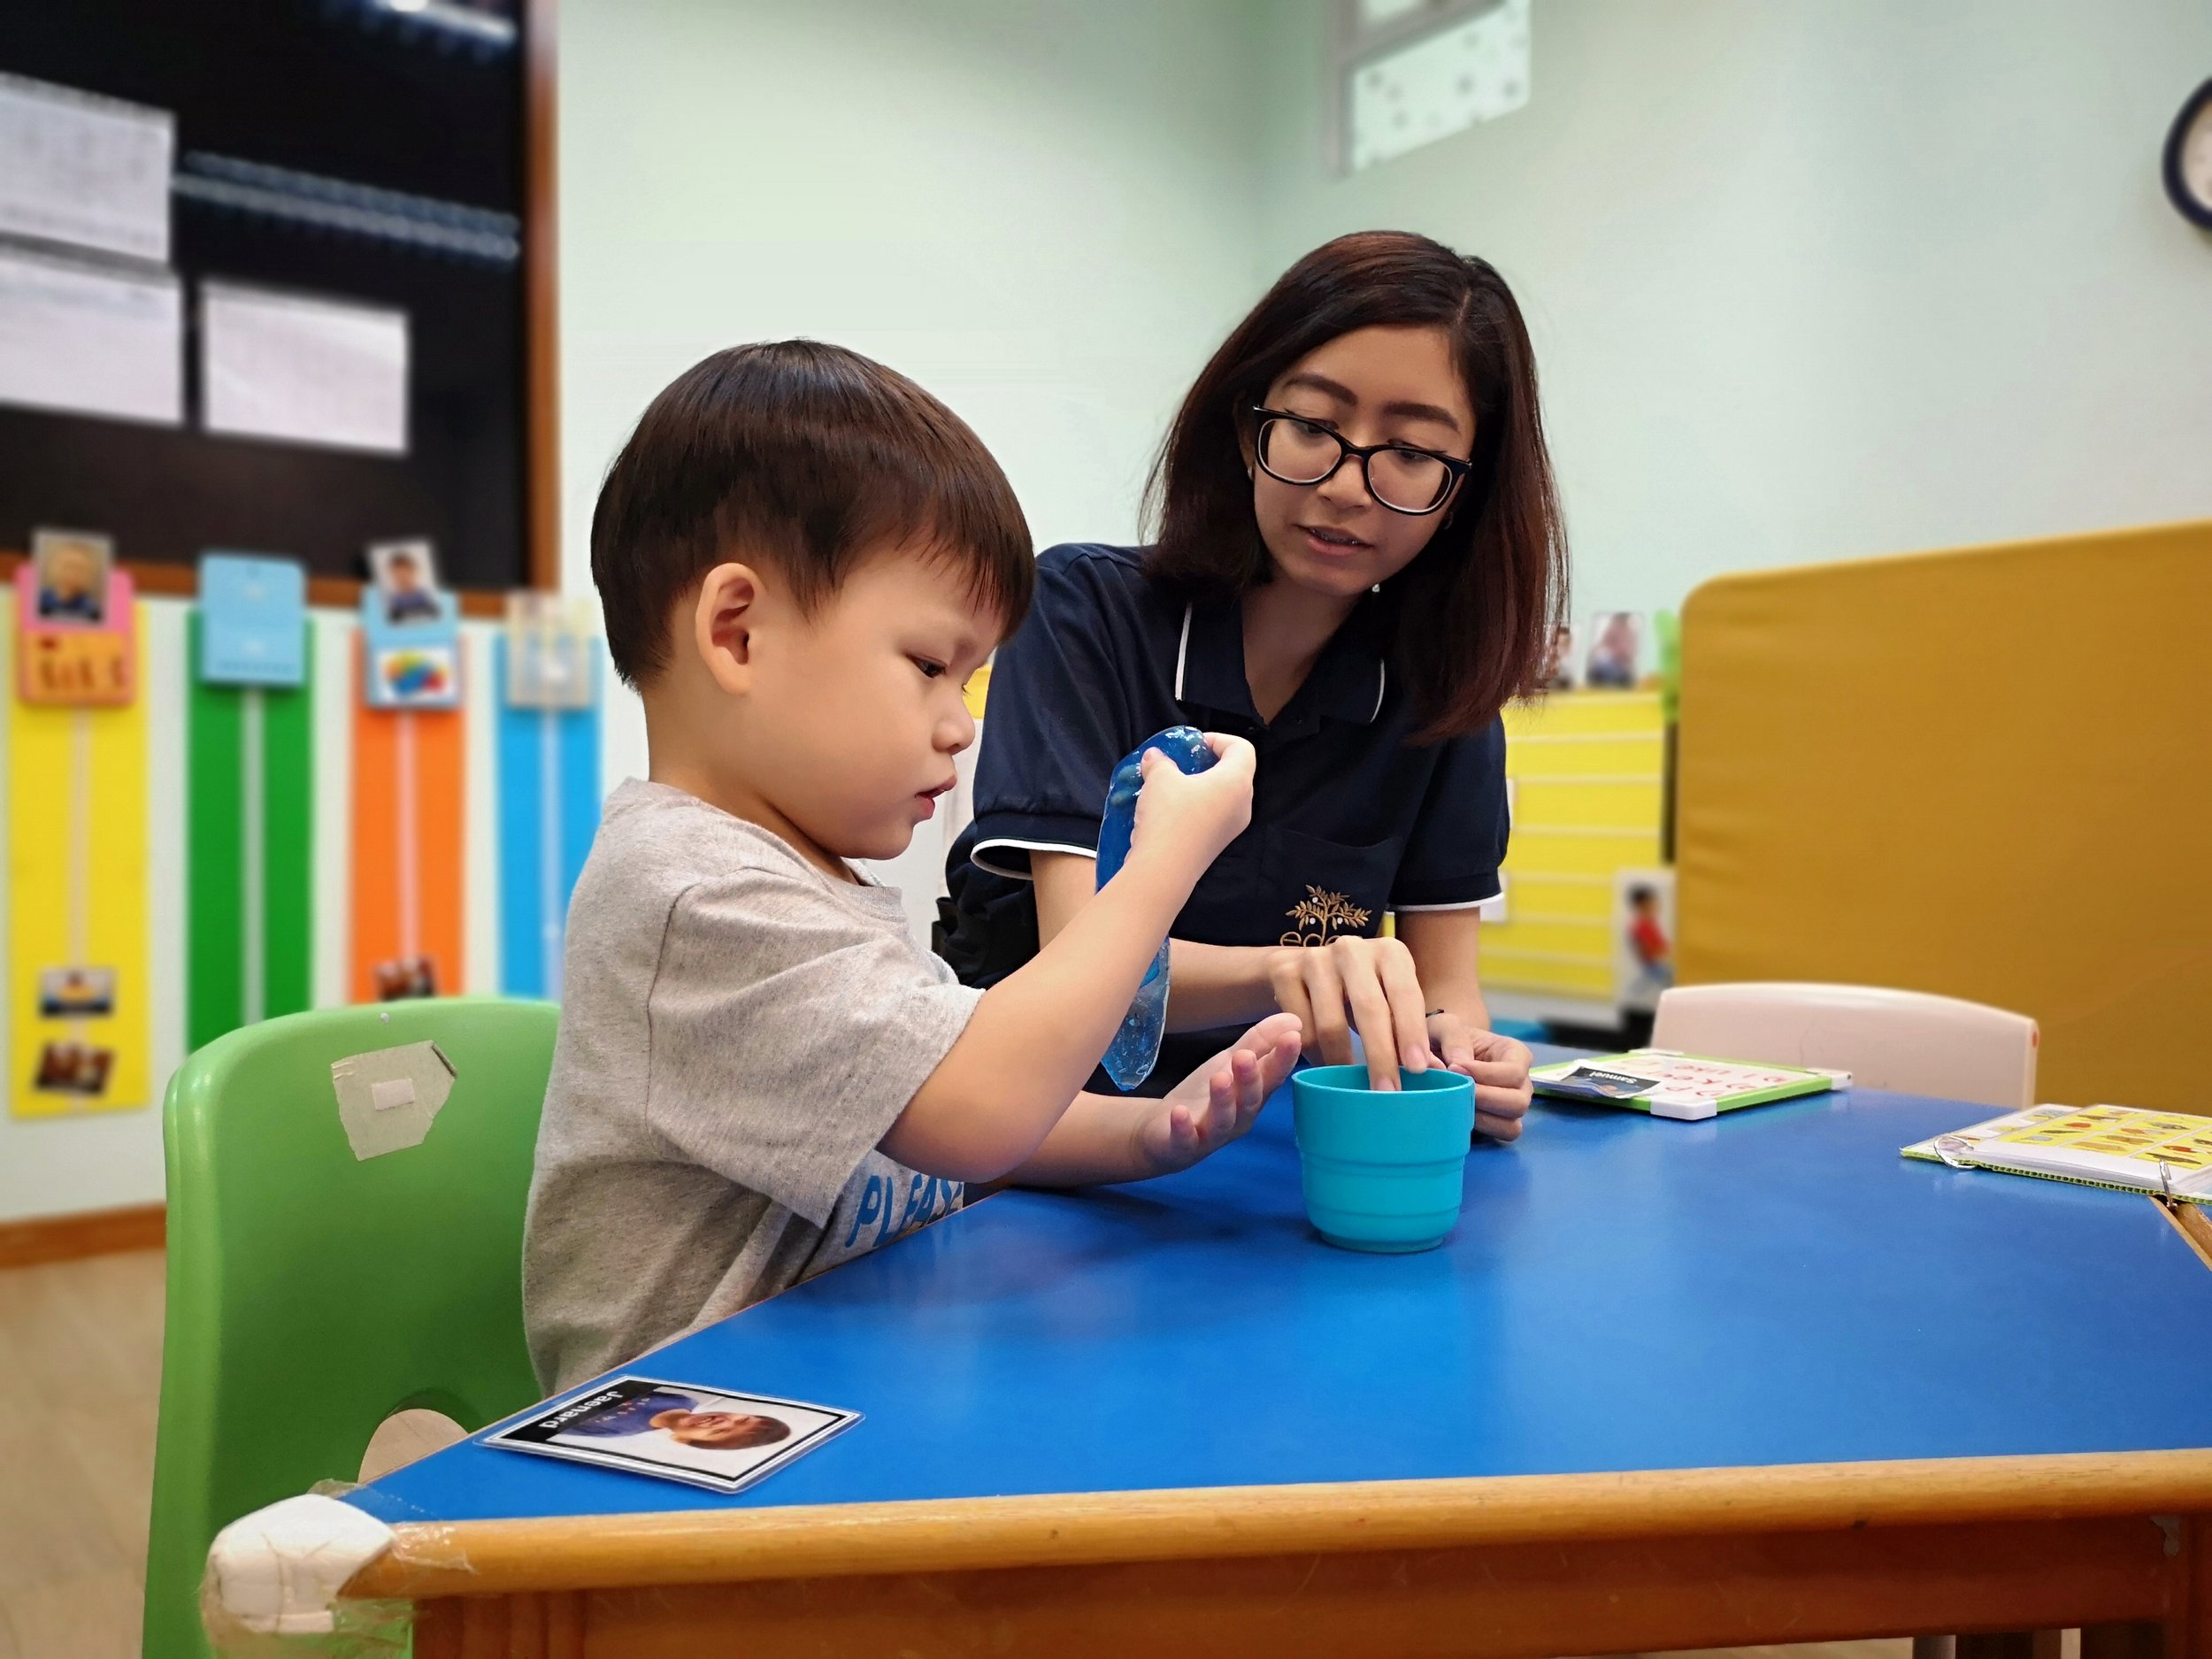 Autism Association (Singapore) - The profits raised will be proceed to support Eden Centre for Adults which endeavours to be the leading centre in achieving quality and long-term outcomes for adults with autism and their families.